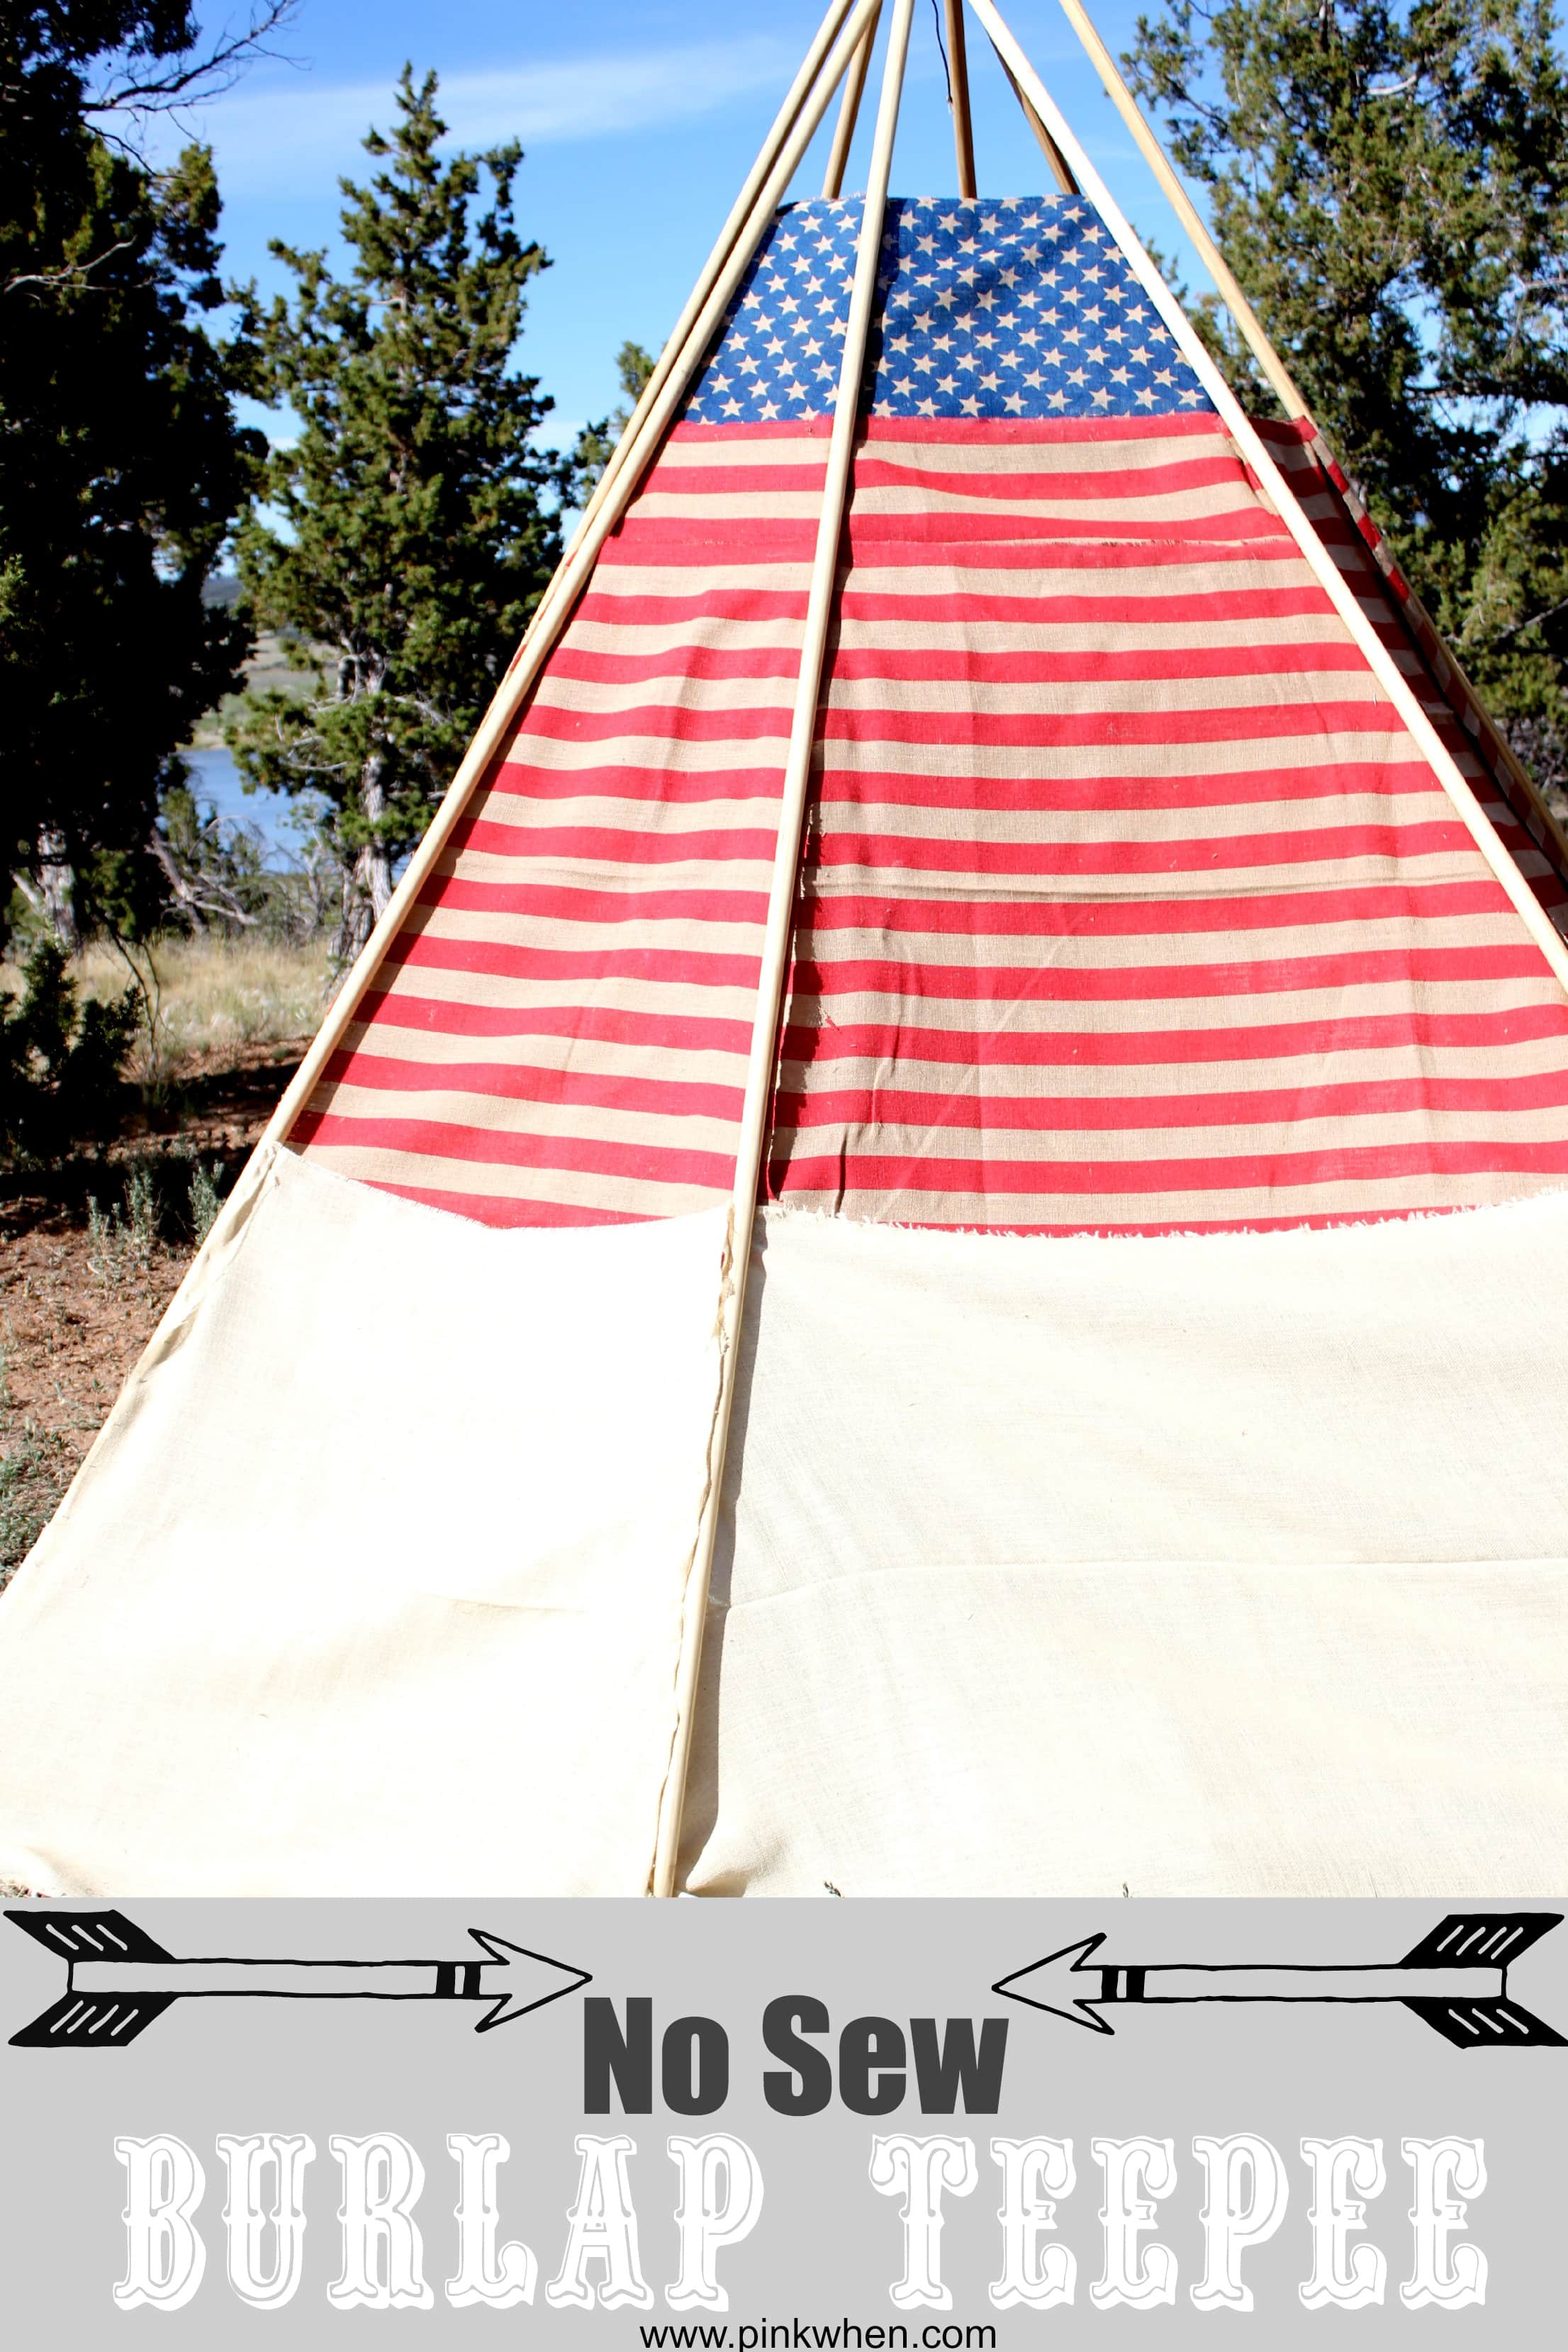 Easy DIY No Sew Burlap TeePee from PinkWhen.com